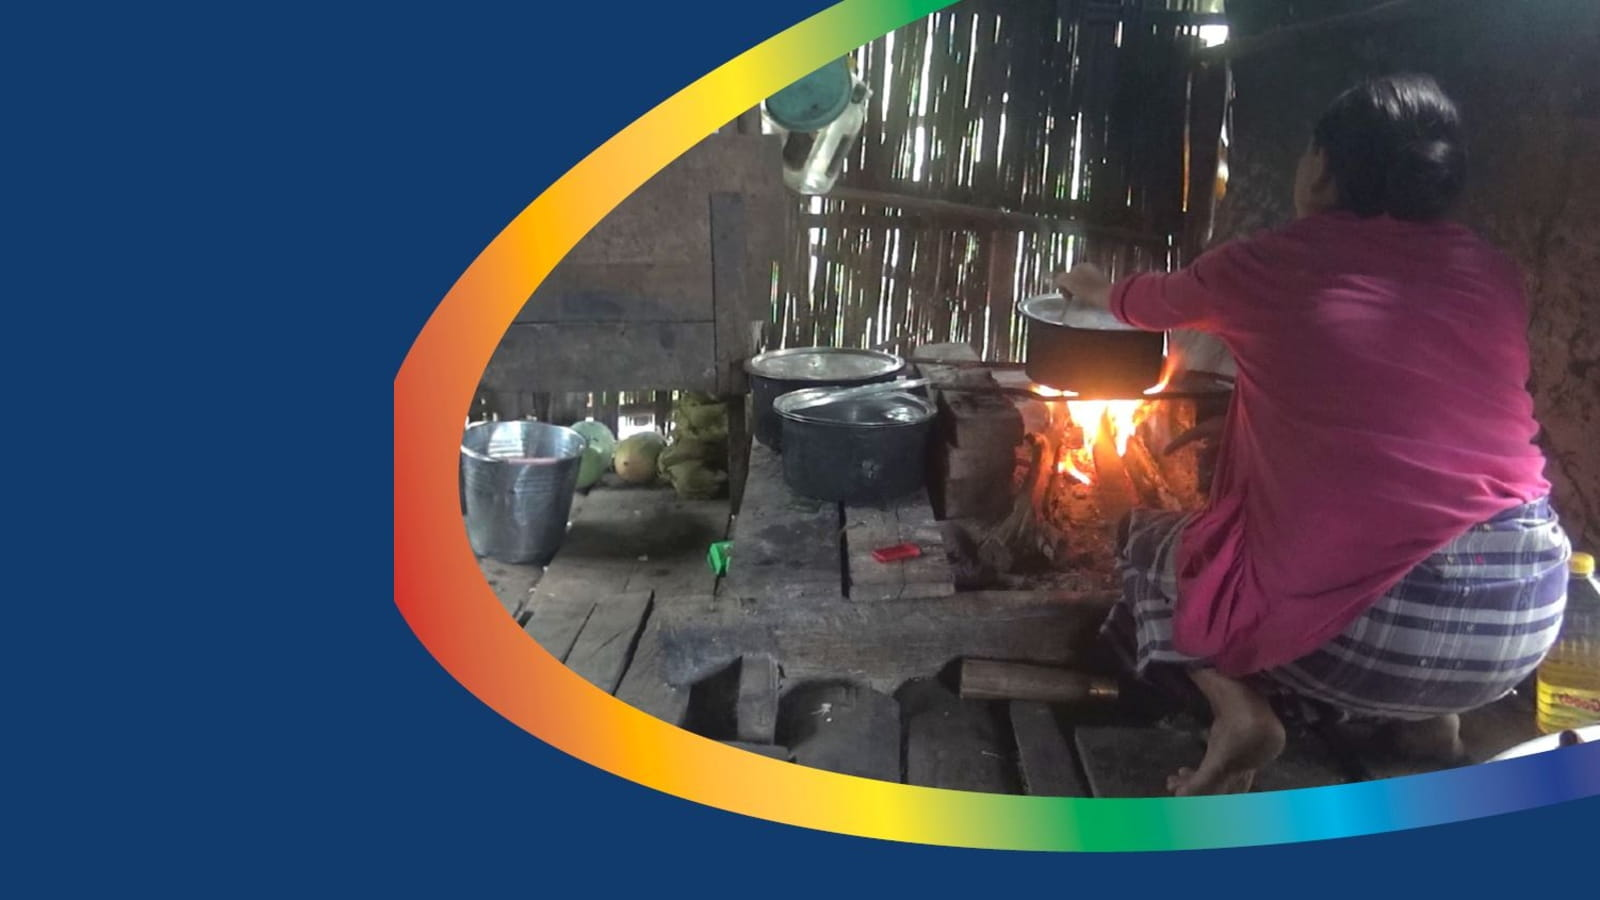 Cover image of a woman in Myanmar cooking on an inefficient wood-burning stove